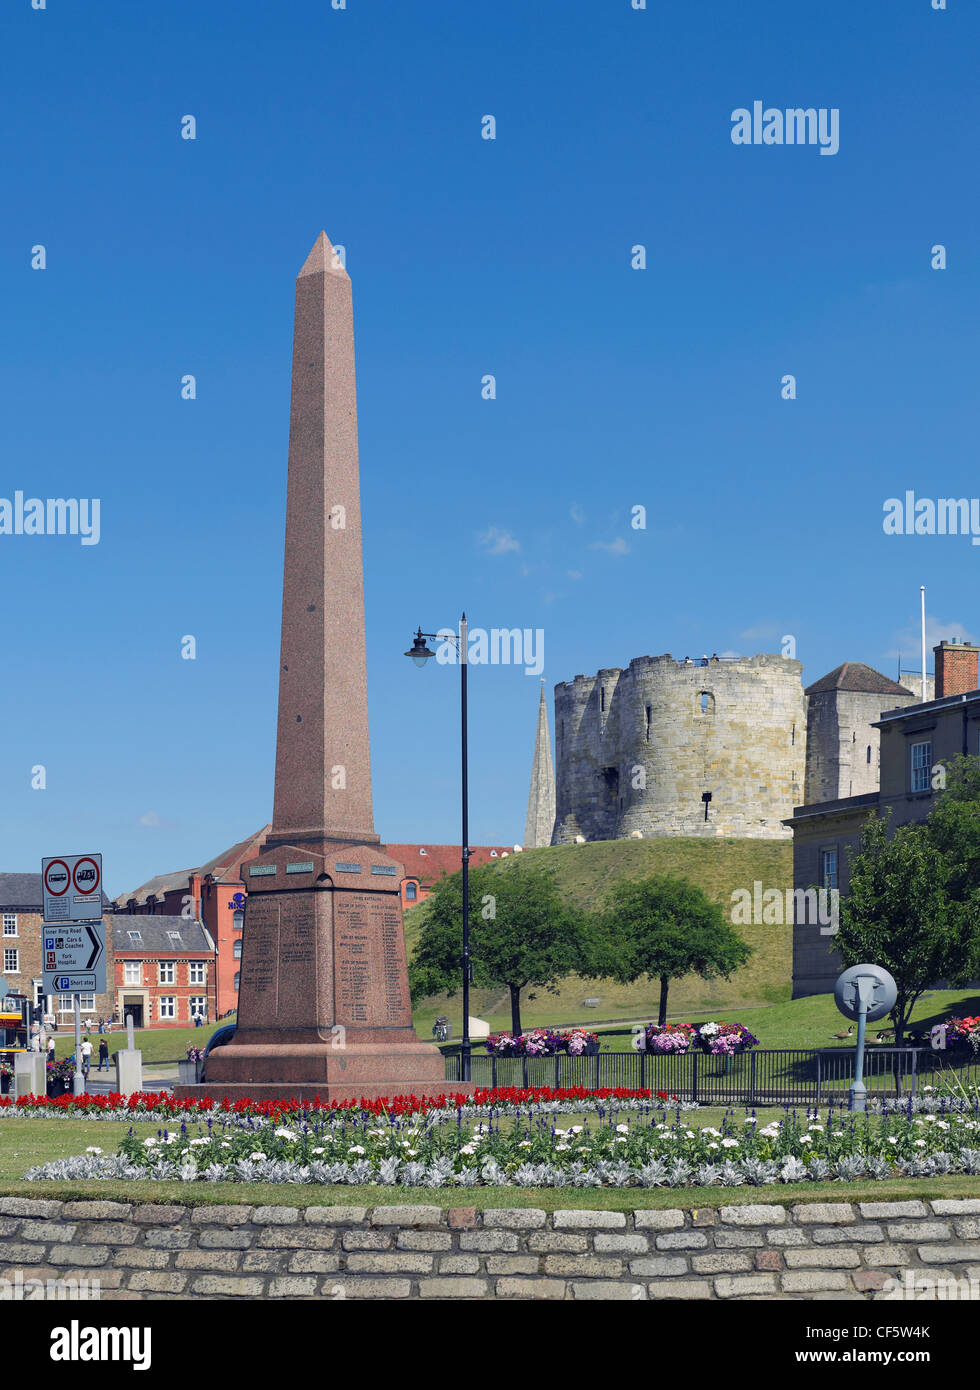 Boer War Memorial to the Green Howards Regiment and Cliffords Tower. - Stock Image